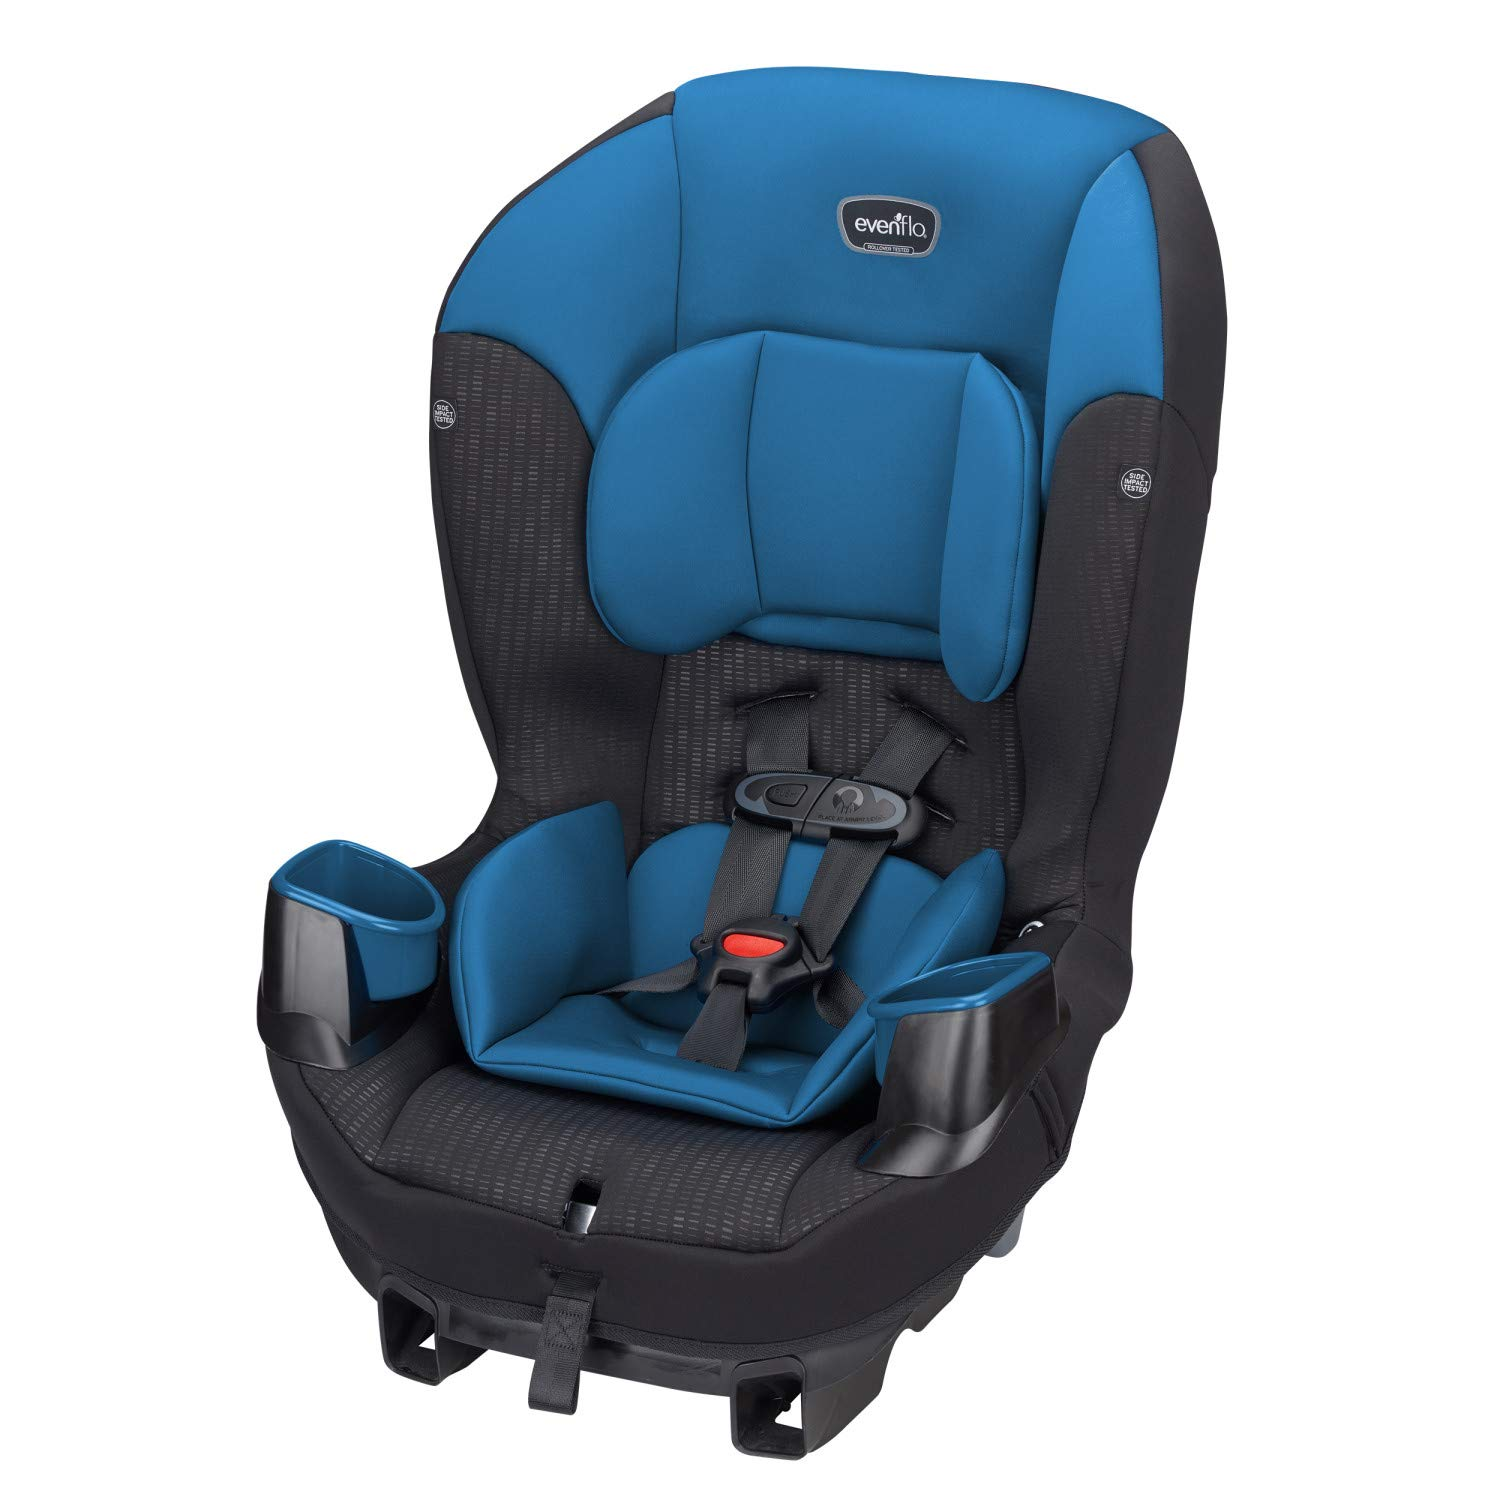 Evenflo Sonus 65 Convertible Car Seat, Sound Wave